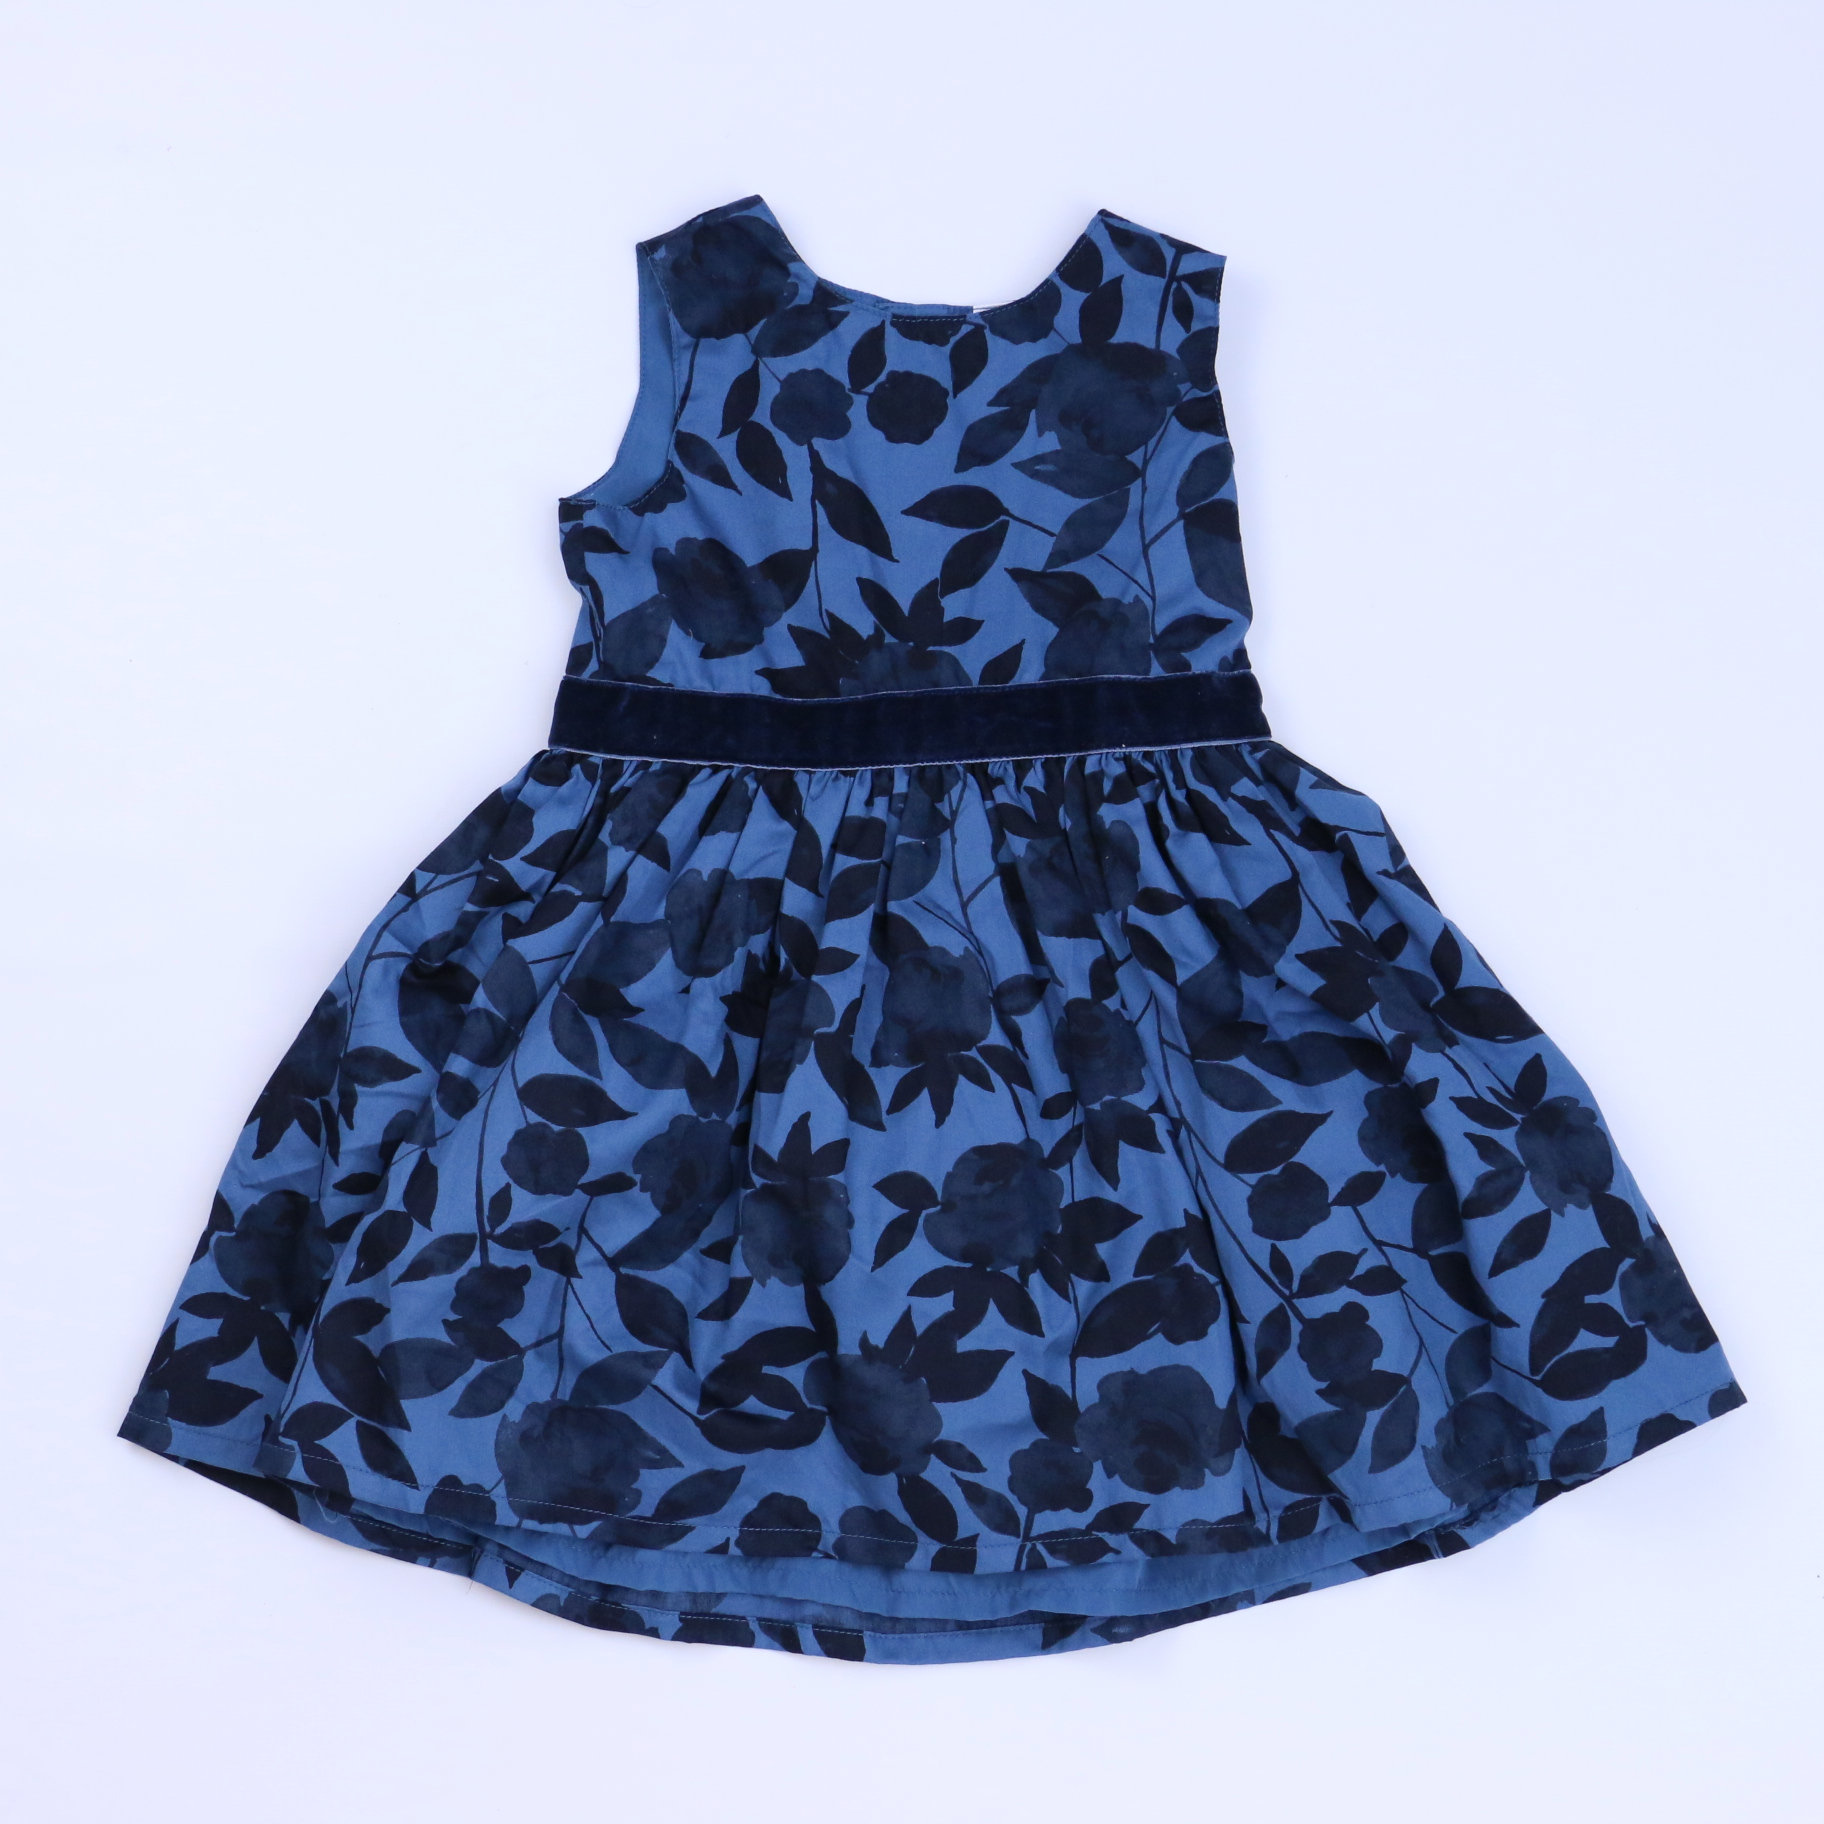 c4d04a8bfc66a Special Occasion Dress size: 18 Months - The Swoondle Society